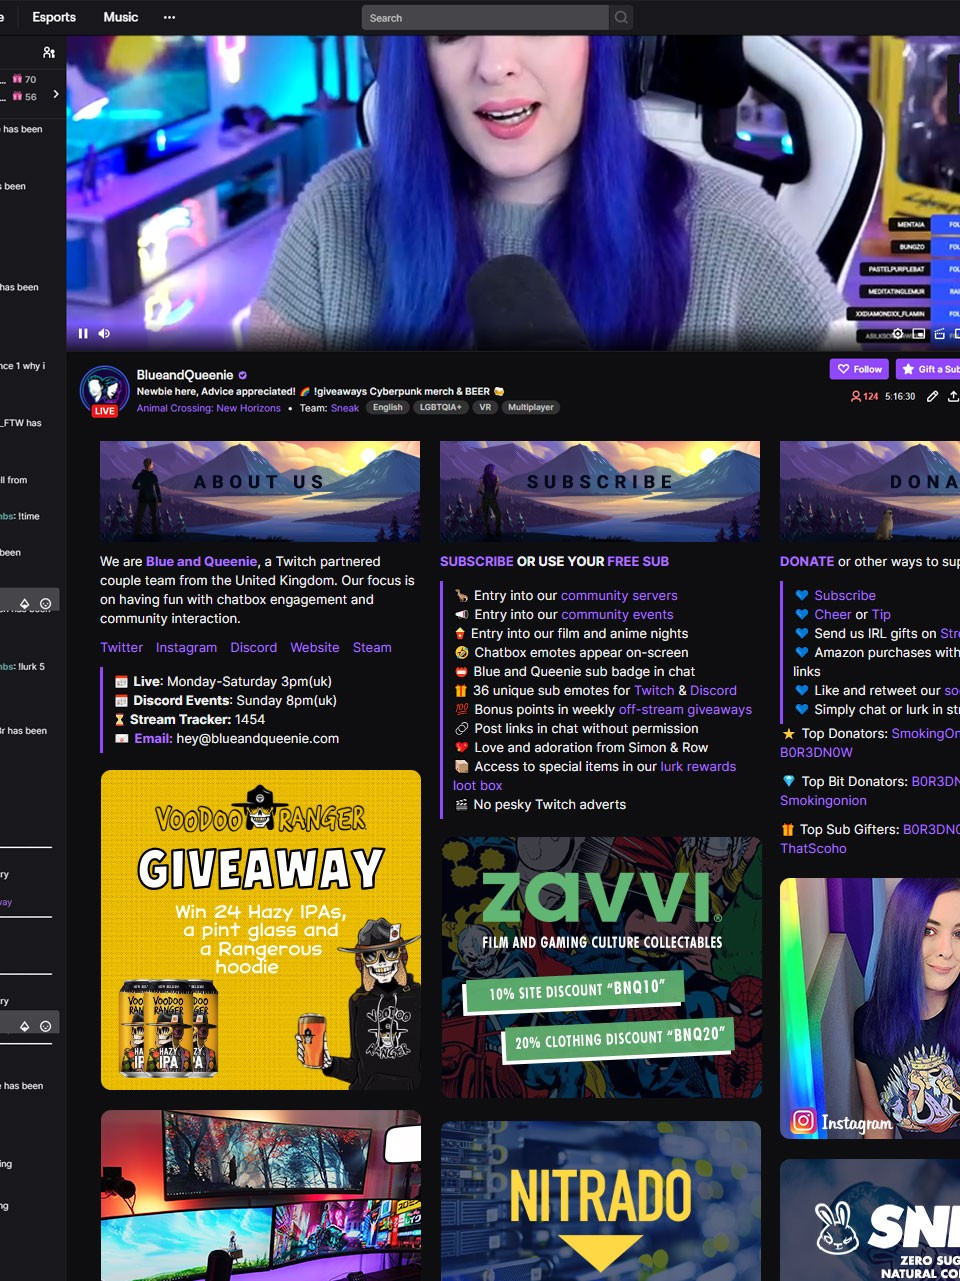 https://blueandqueenie.com/wp-content/uploads/2021/03/twitchpanel-vd-coverage.jpg